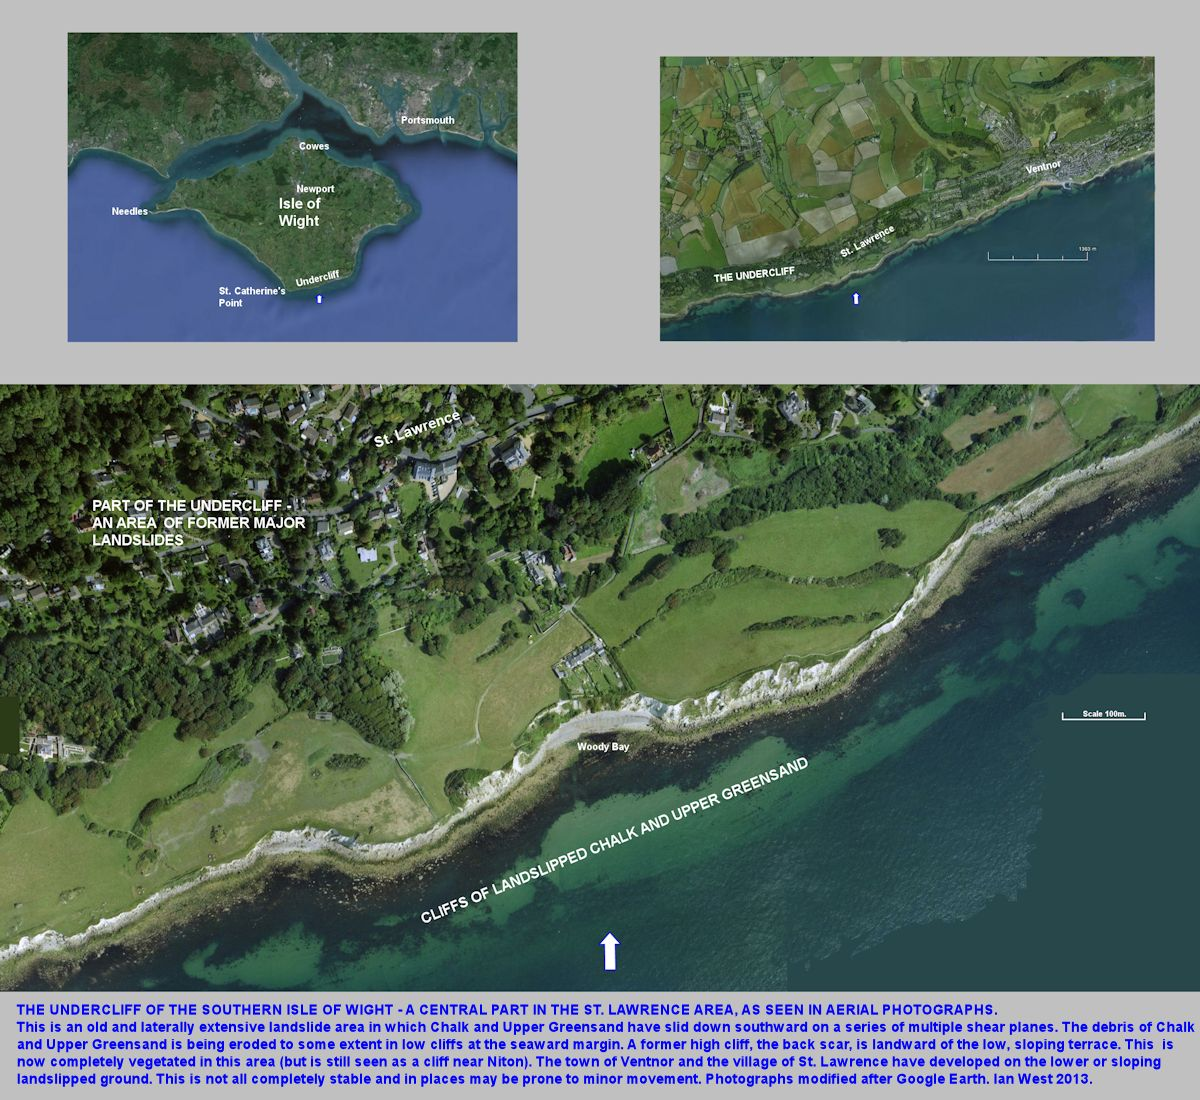 Arial photographs of the central part of the Undercliff, southern Isle of Wight, including the St. Lawrence area